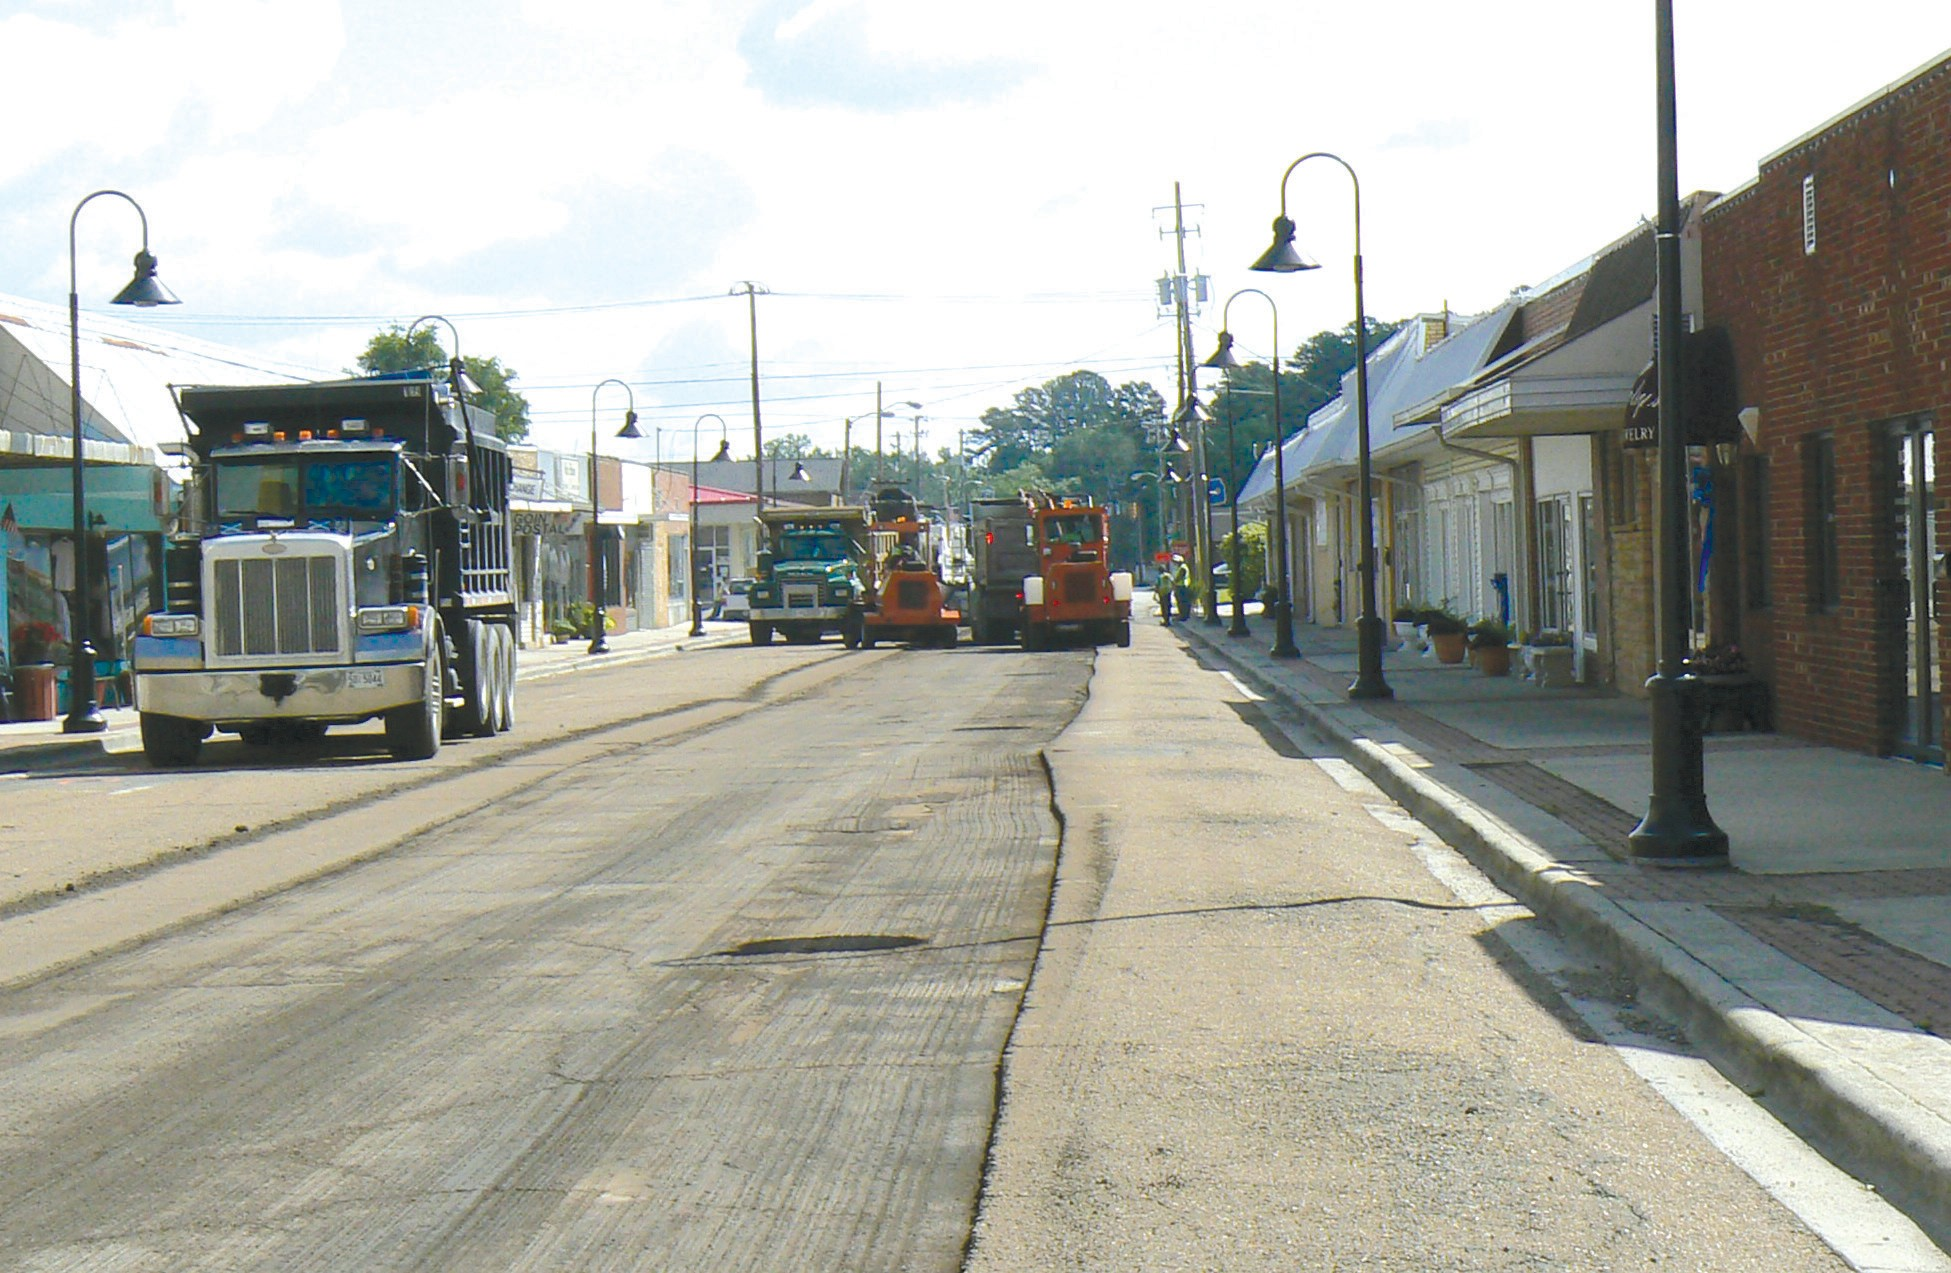 Work began again this week on the $500,000 project for downtown Oneonta that will include new light fixtures and new pavement. According to Oneonta city manager Ed Lowe, the bid on the project came in at $435,000 for the repaving and lighting of First Avenue from A Street to First Street. Part of the lighting has already been installed. Whitaker Contracting of Guntersville won the bid and is the main contractor for the project. Work is expected to be finished on the project later this month, although this spring's volatile weather has played havoc with the schedule. -Rob Rice